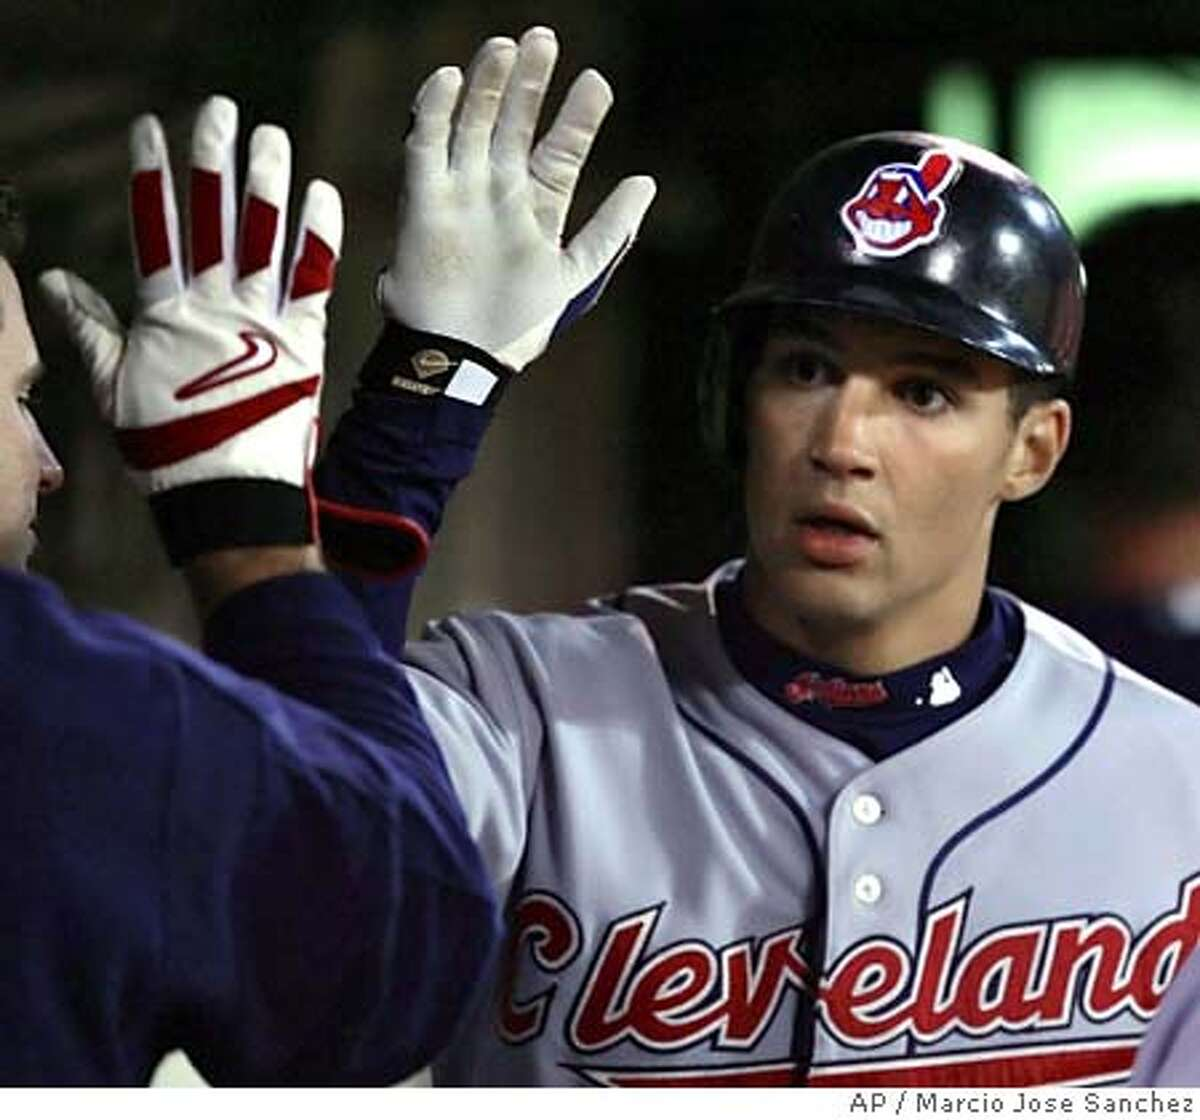 Cleveland Indians' Grady Sizemore, right, is greeted in the dugout by teammates after a solo home run off Oakland Athletics reliever Jay Witasick in the eighth inning Tuesday, July 26, 2005, in Oakland, Calif. (AP Photo/Marcio Jose Sanchez)